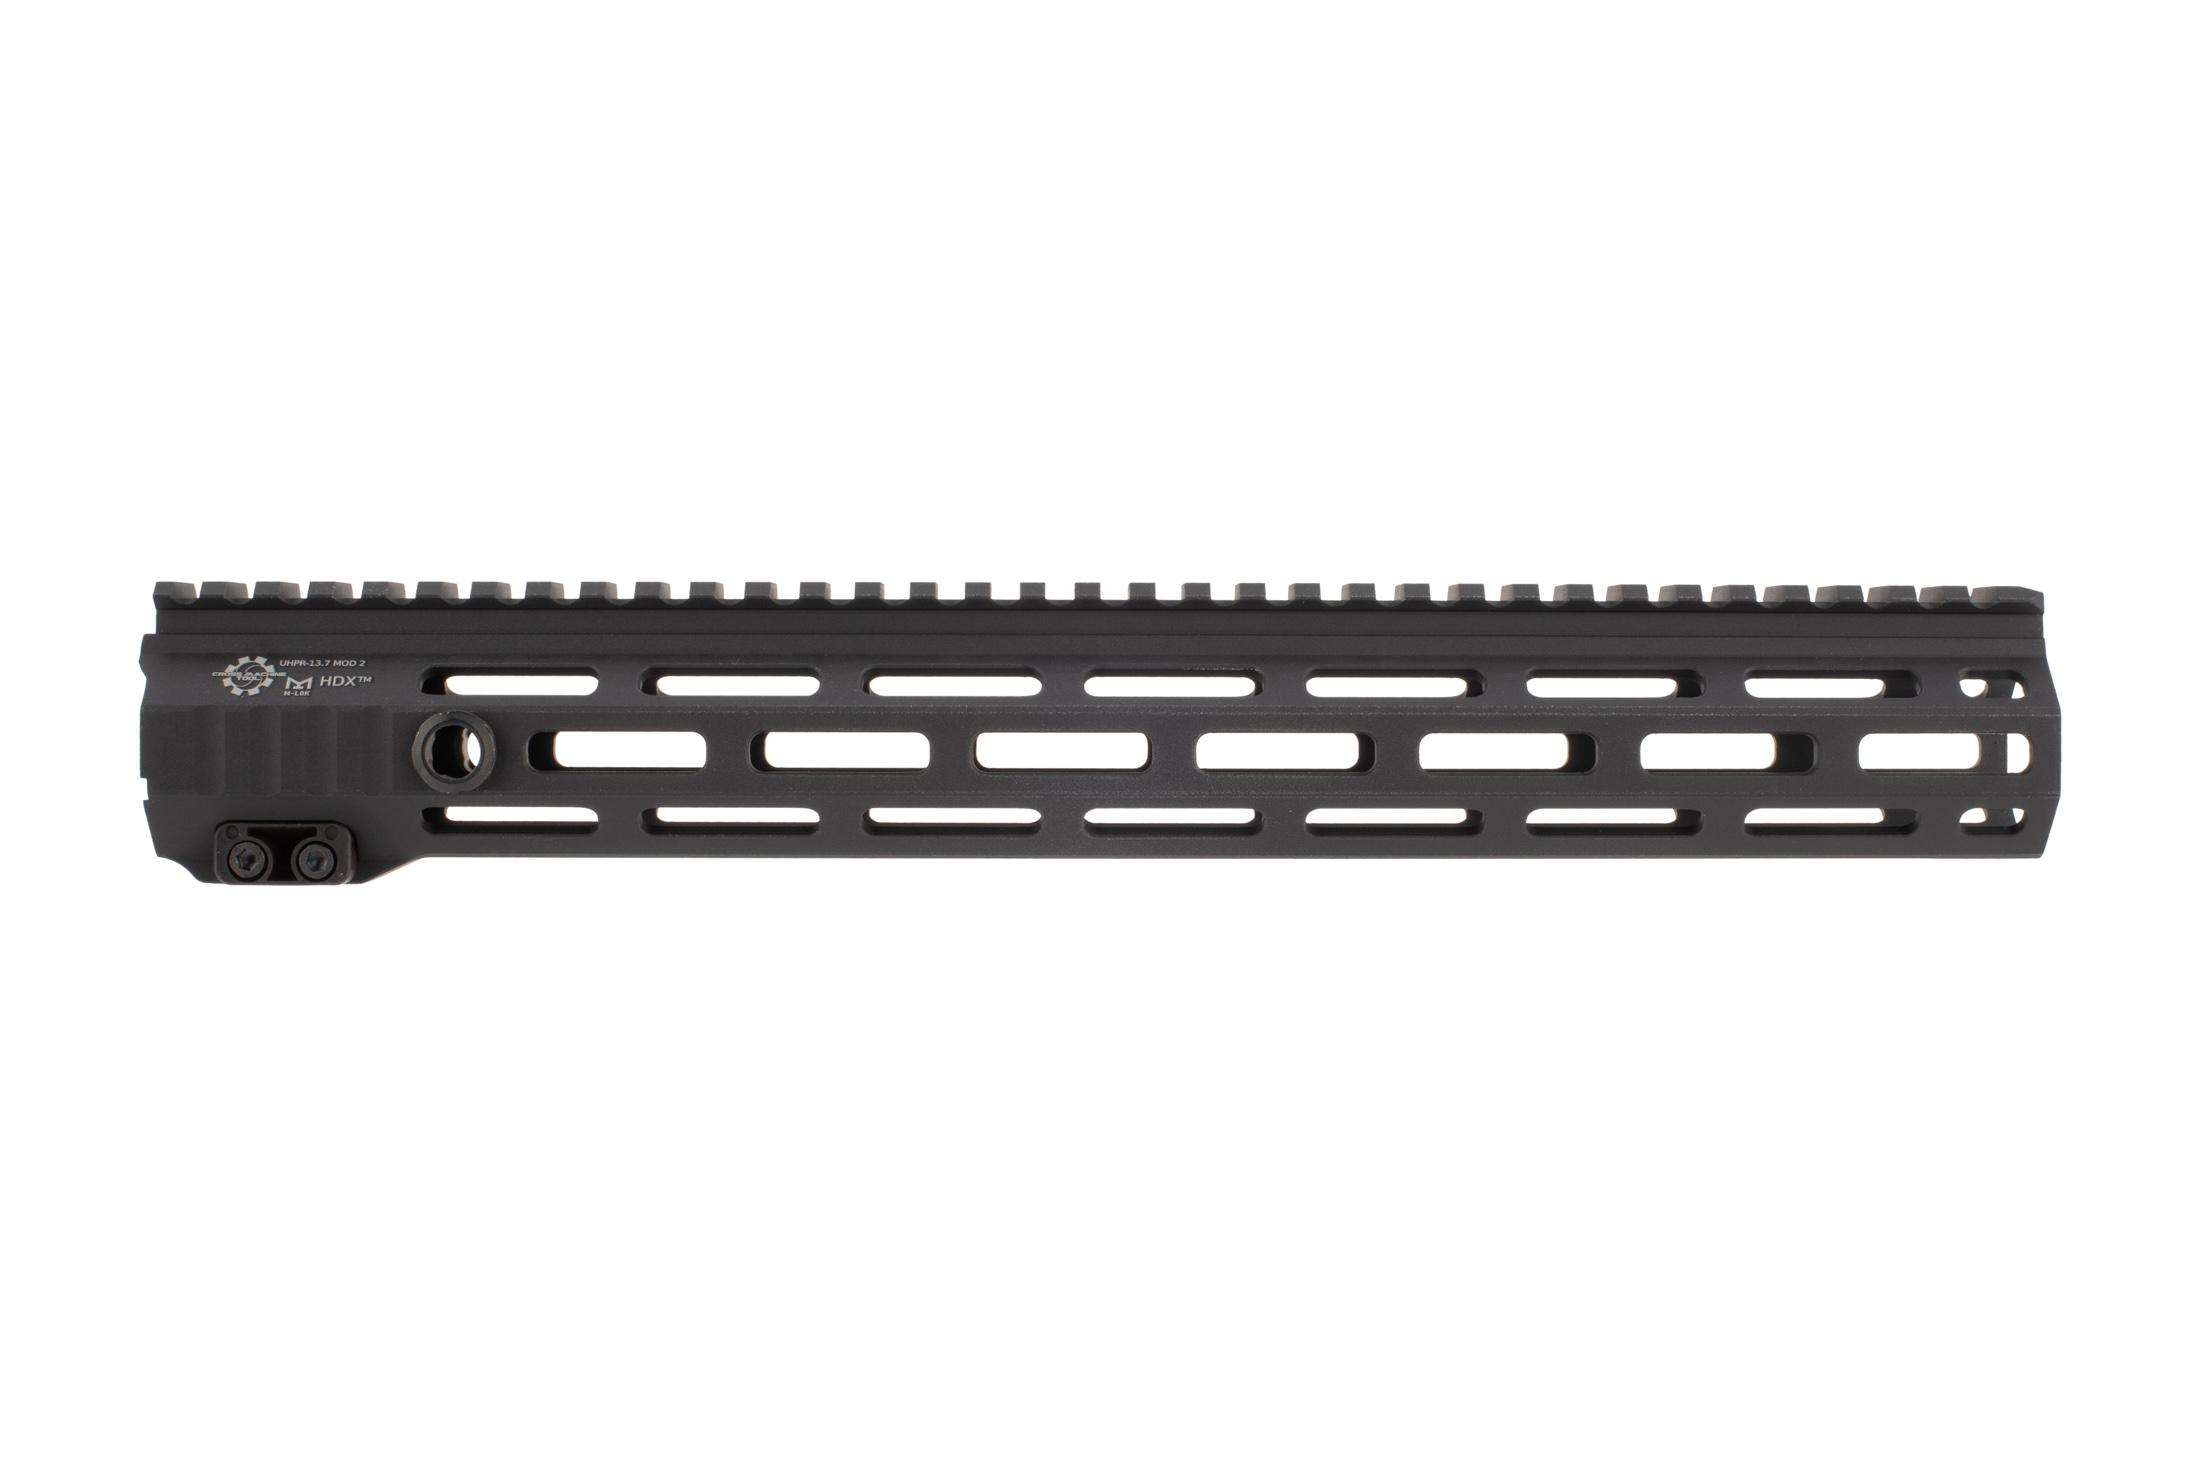 The CMT UHPR Mod 2 HDX Free float handguard features M-LOK slots on three sides